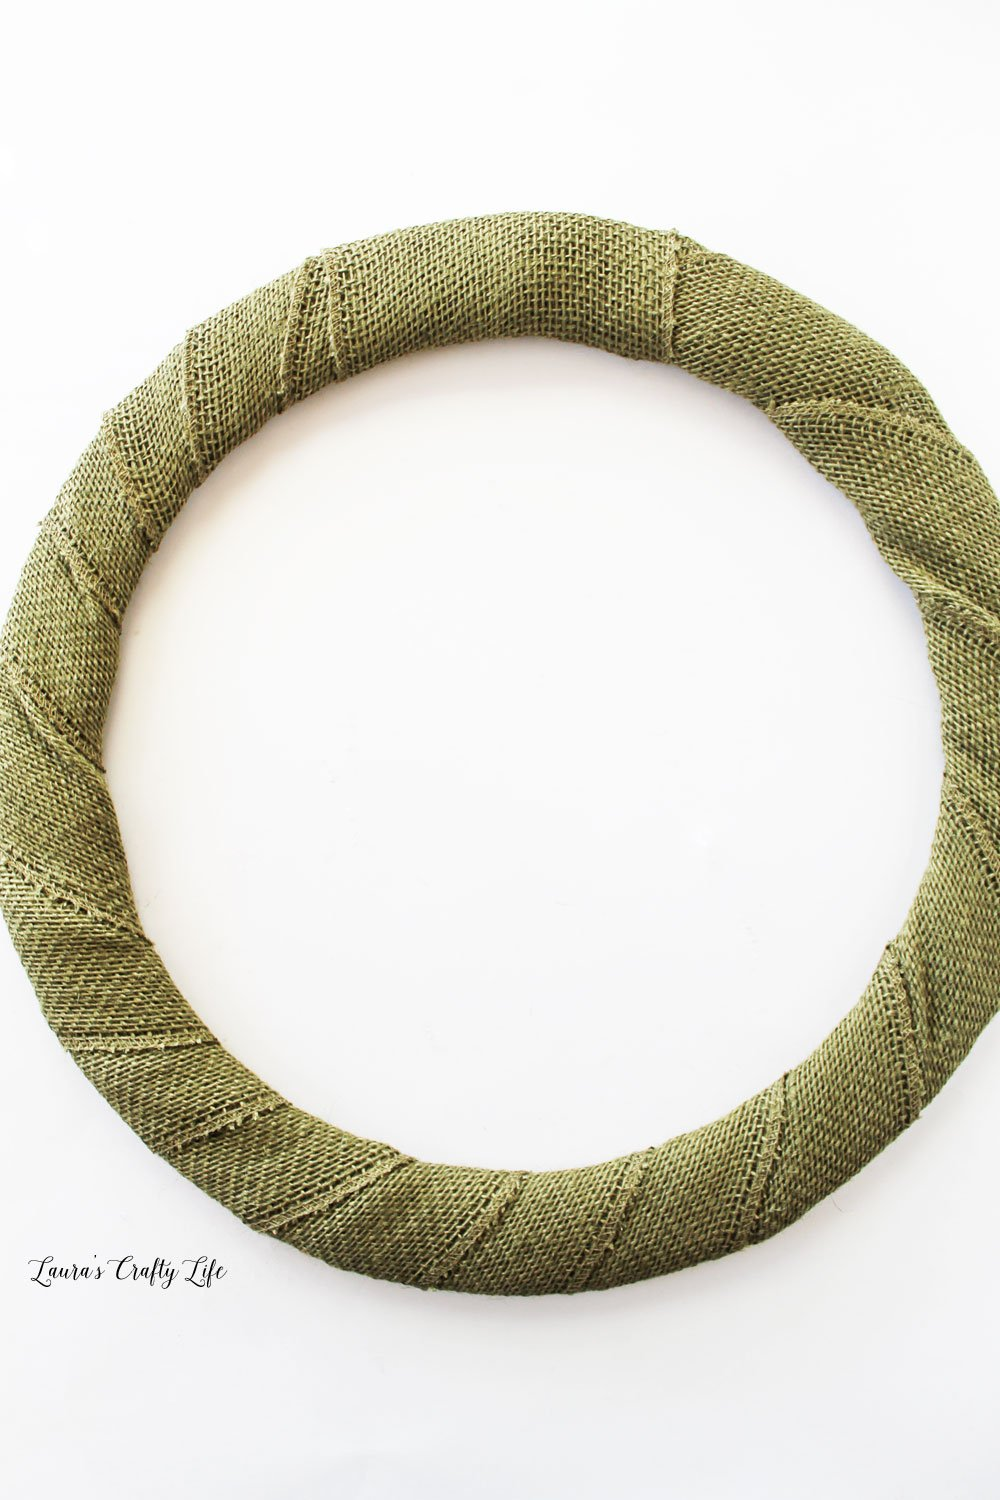 Burlap wrapped wire wreath